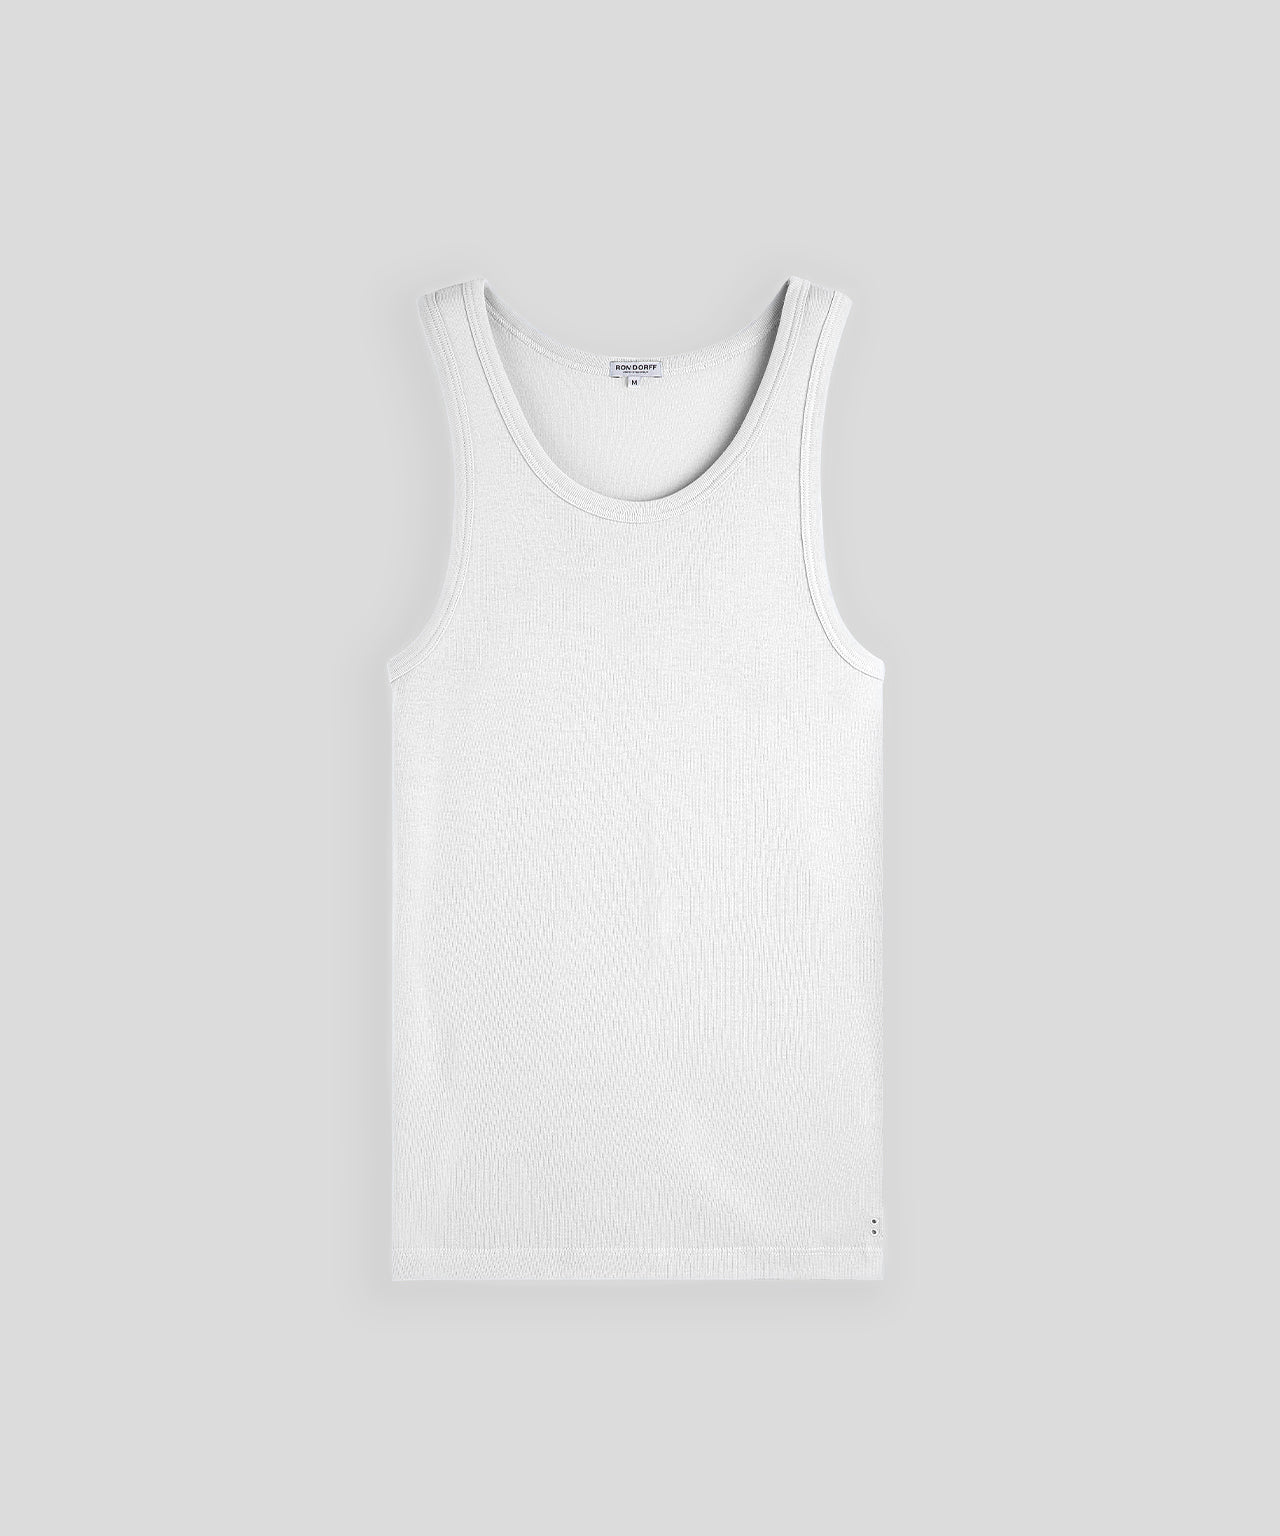 Ribbed Tank Top His For Her - white